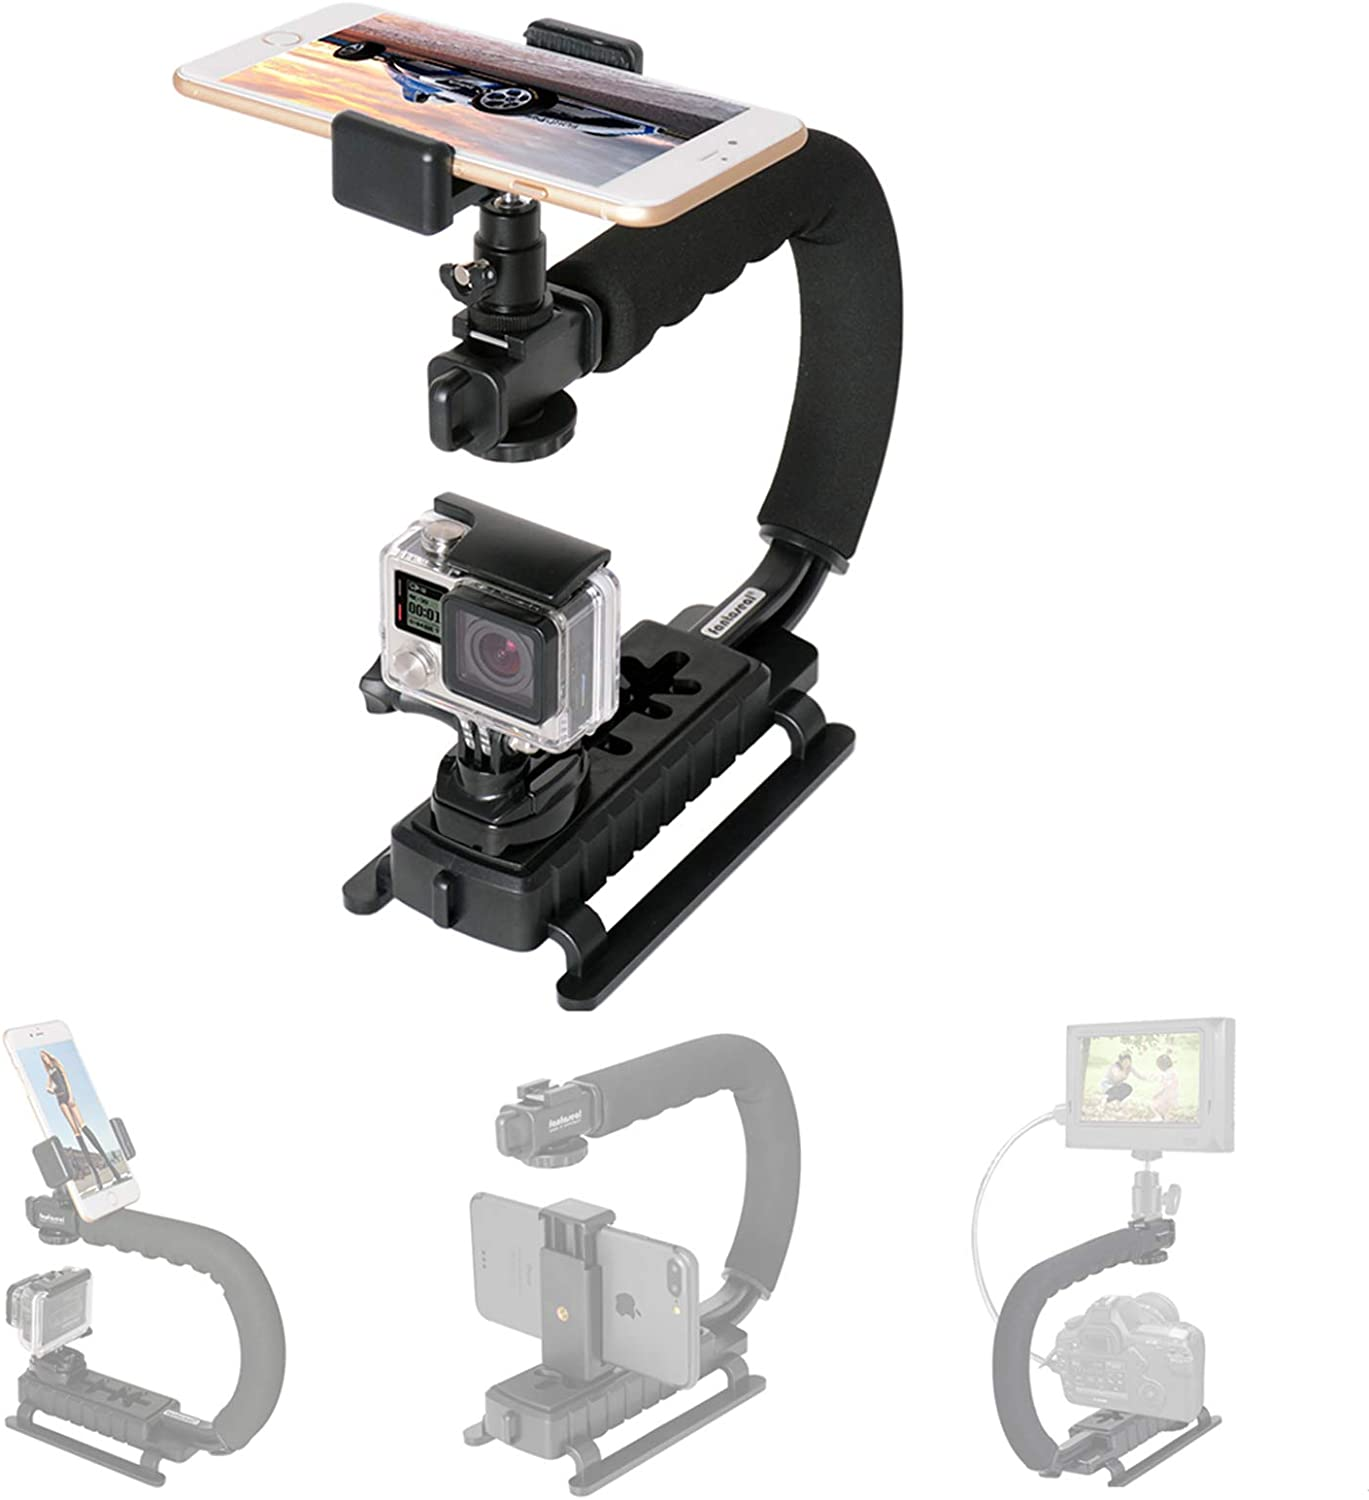 Fantaseal 4-in-1 Gimbal (Most Affordable Price)